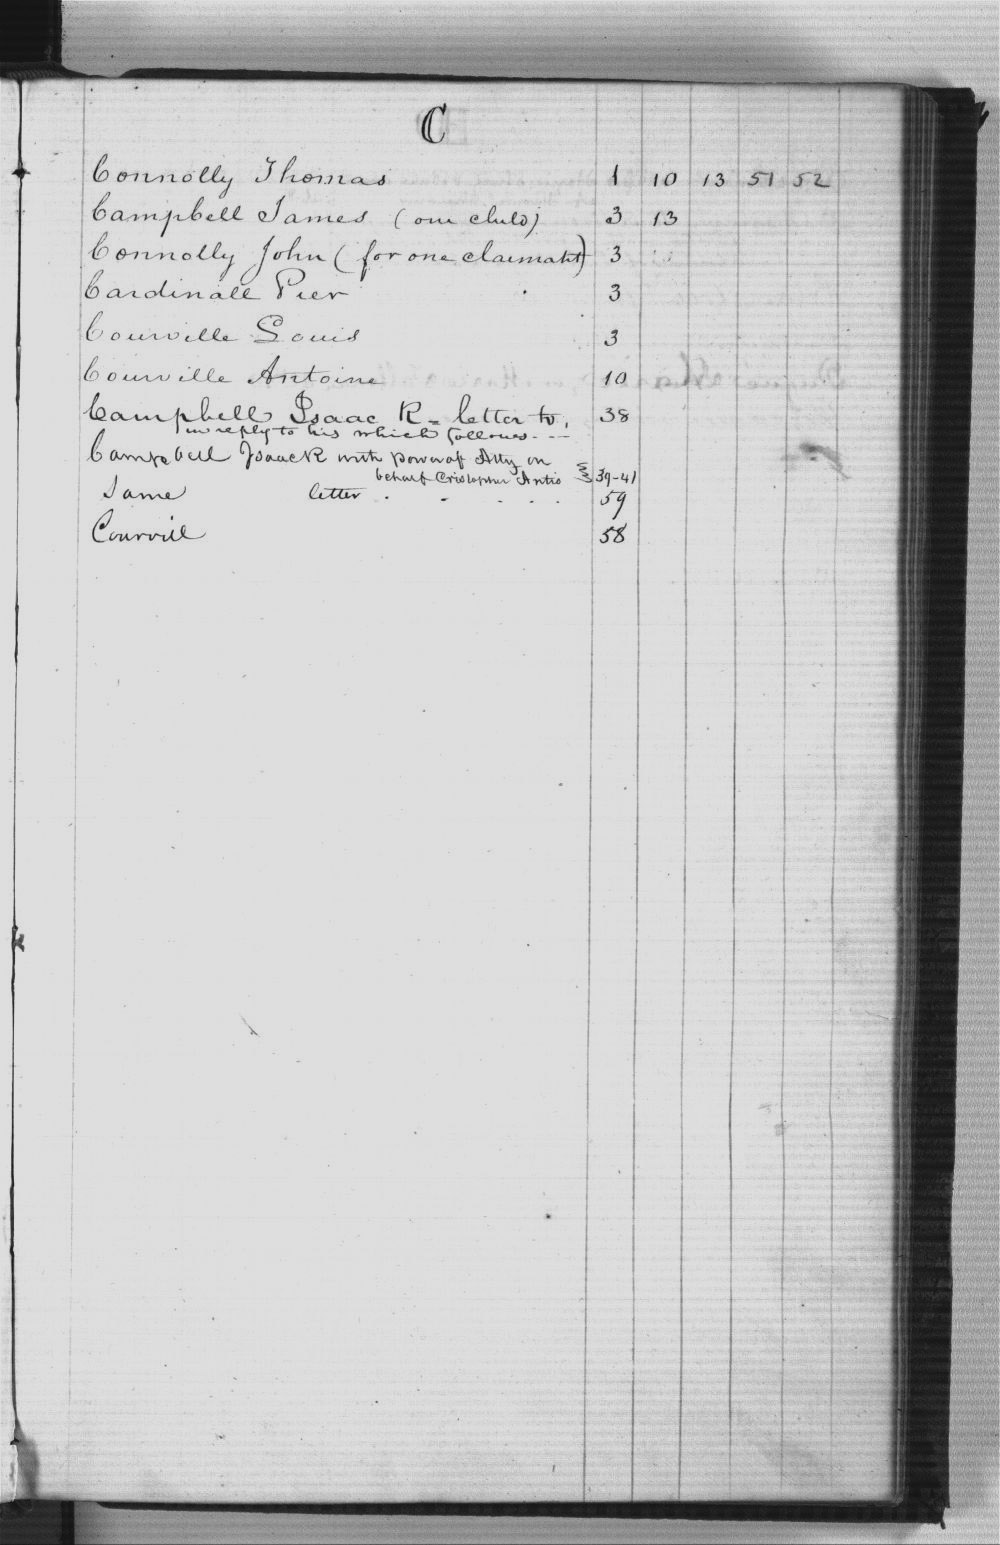 United States Office of Indian Affairs, Central Superintendency, St. Louis, Missouri. Volume 32, Claims under 1824 Sac and Fox Treaty - Index C